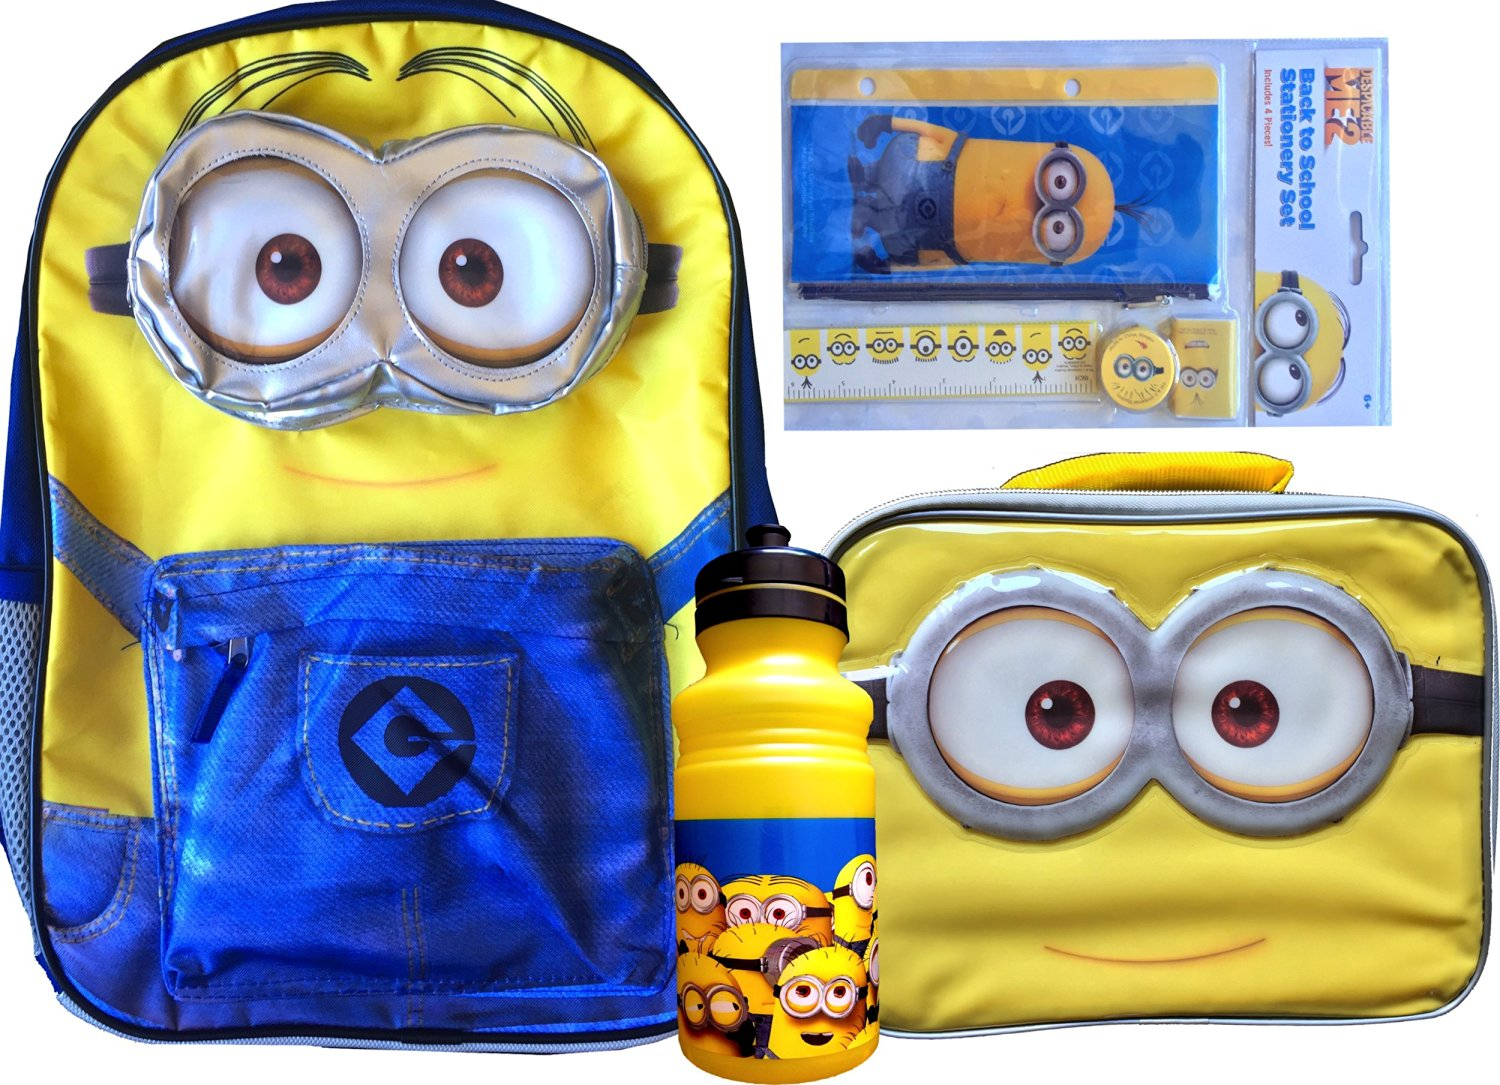 2c4b5ece1f40 Buy Minions Backpack with Minions Novelty Lunch Box with Minions ...